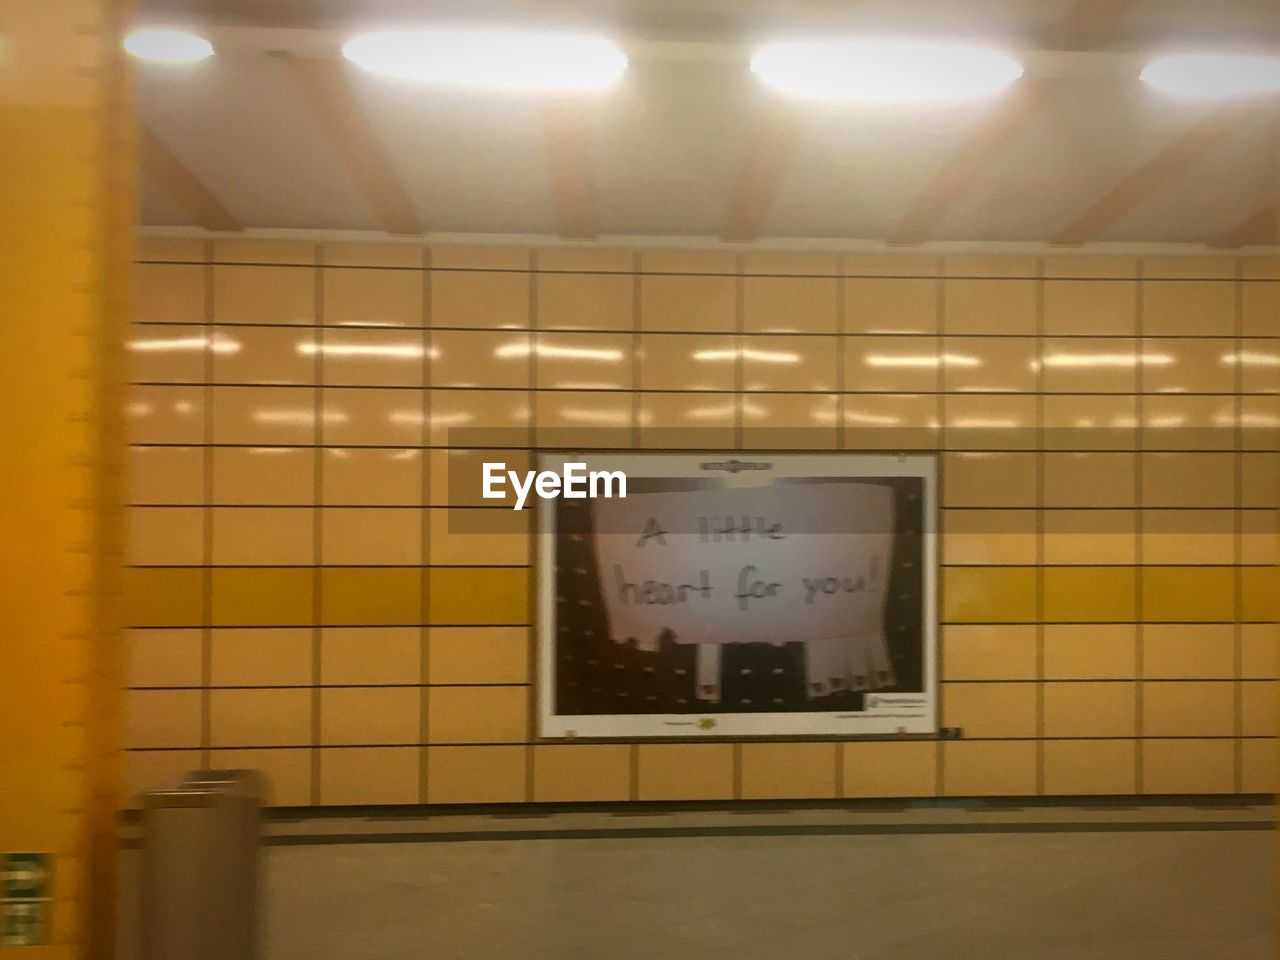 illuminated, indoors, lighting equipment, no people, wall - building feature, text, tile, flooring, communication, light, ceiling, subway station, western script, architecture, public restroom, domestic room, electric light, wall, sign, public building